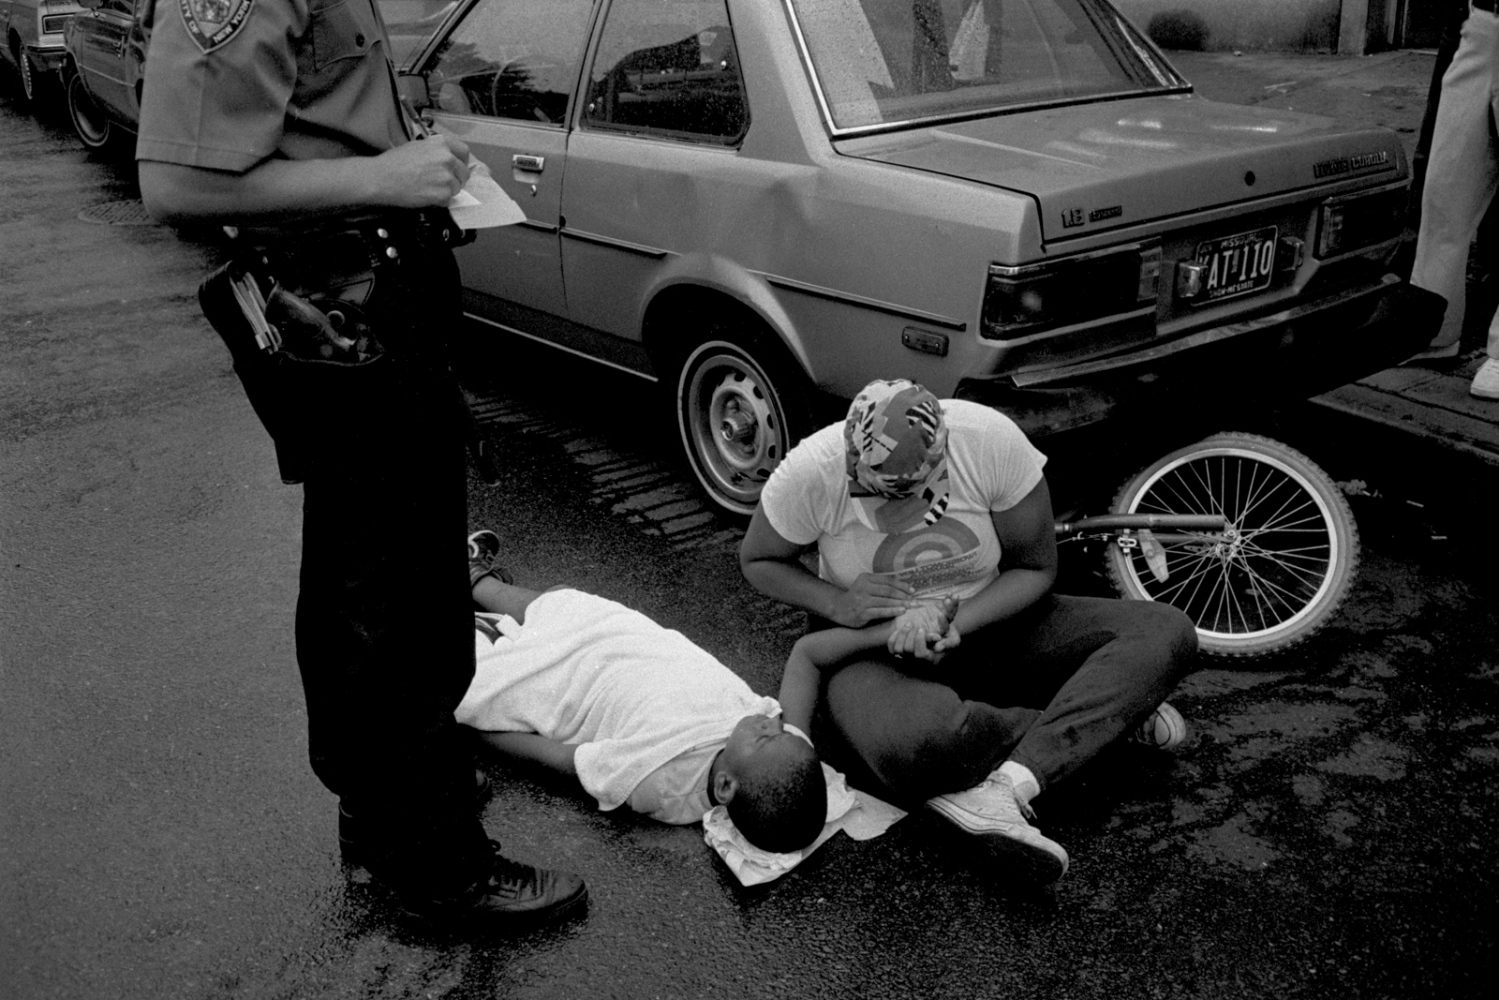 Boy riding his bike and hit by a car, is comforted by a stranger. Midtown 1987